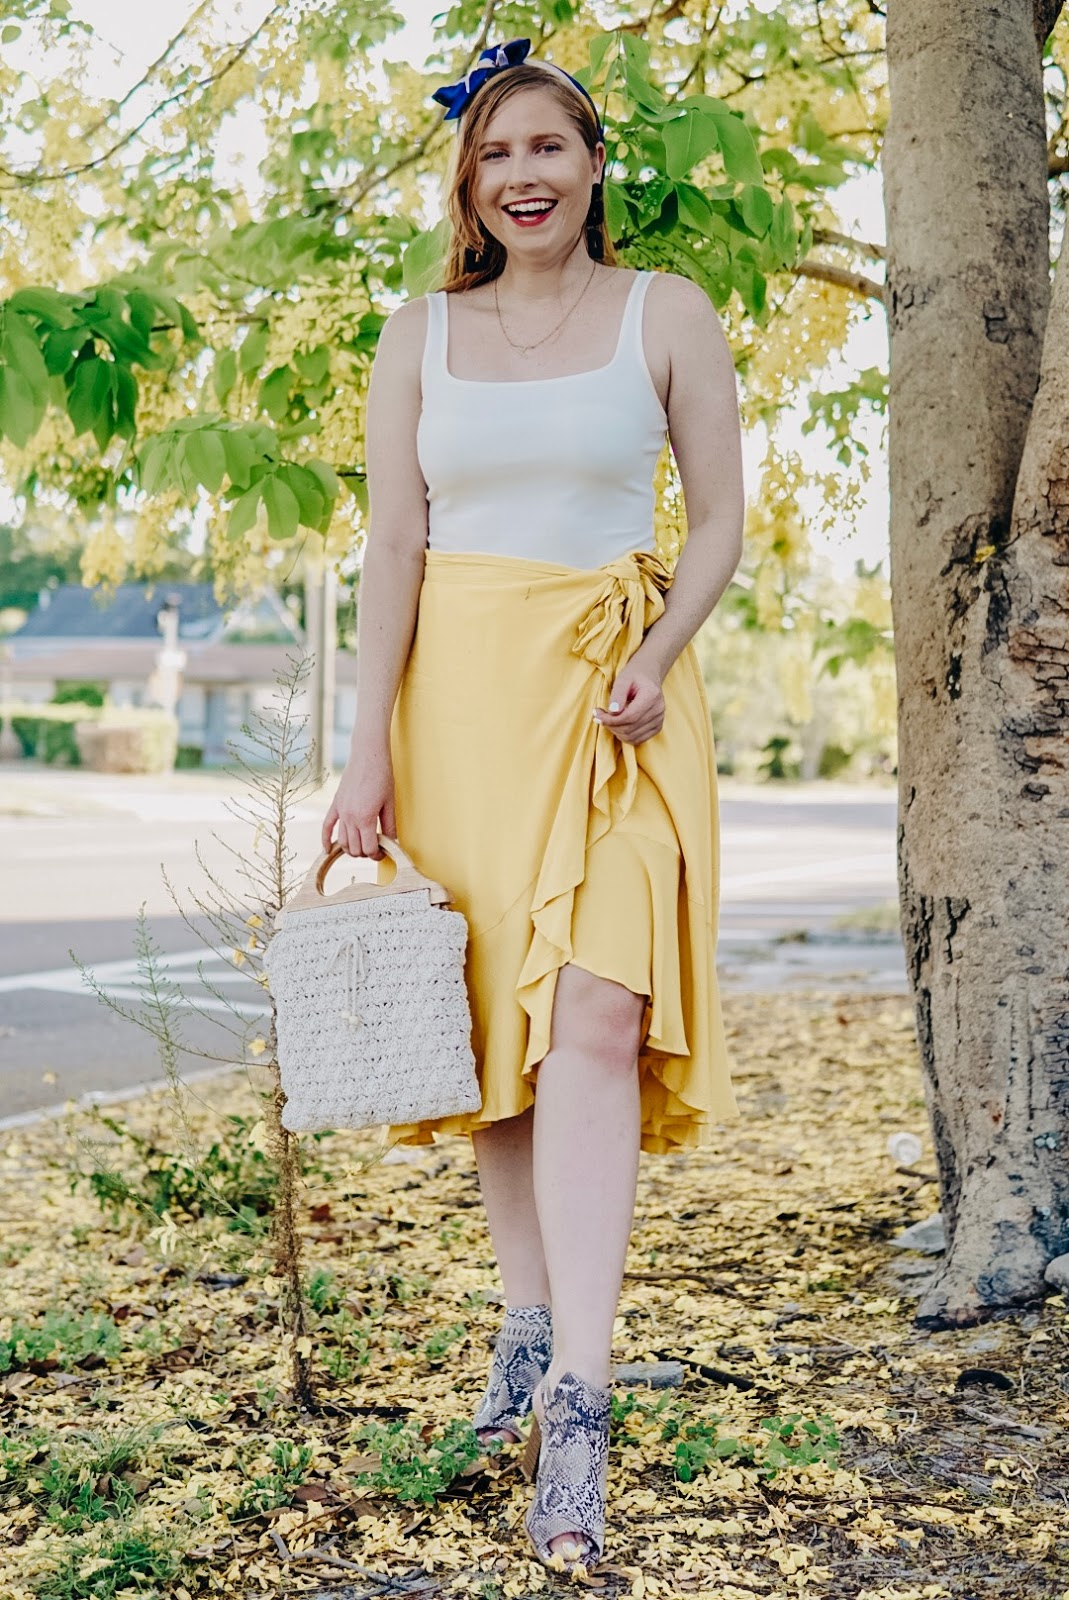 Styling a Casual Yellow Wrap Midi Skirt for Summer | Affordable by Amanda by Amanda Burrows, she is a Tampa Blogger wearing a yellow ruffle midi skirt from Misred Outfitters